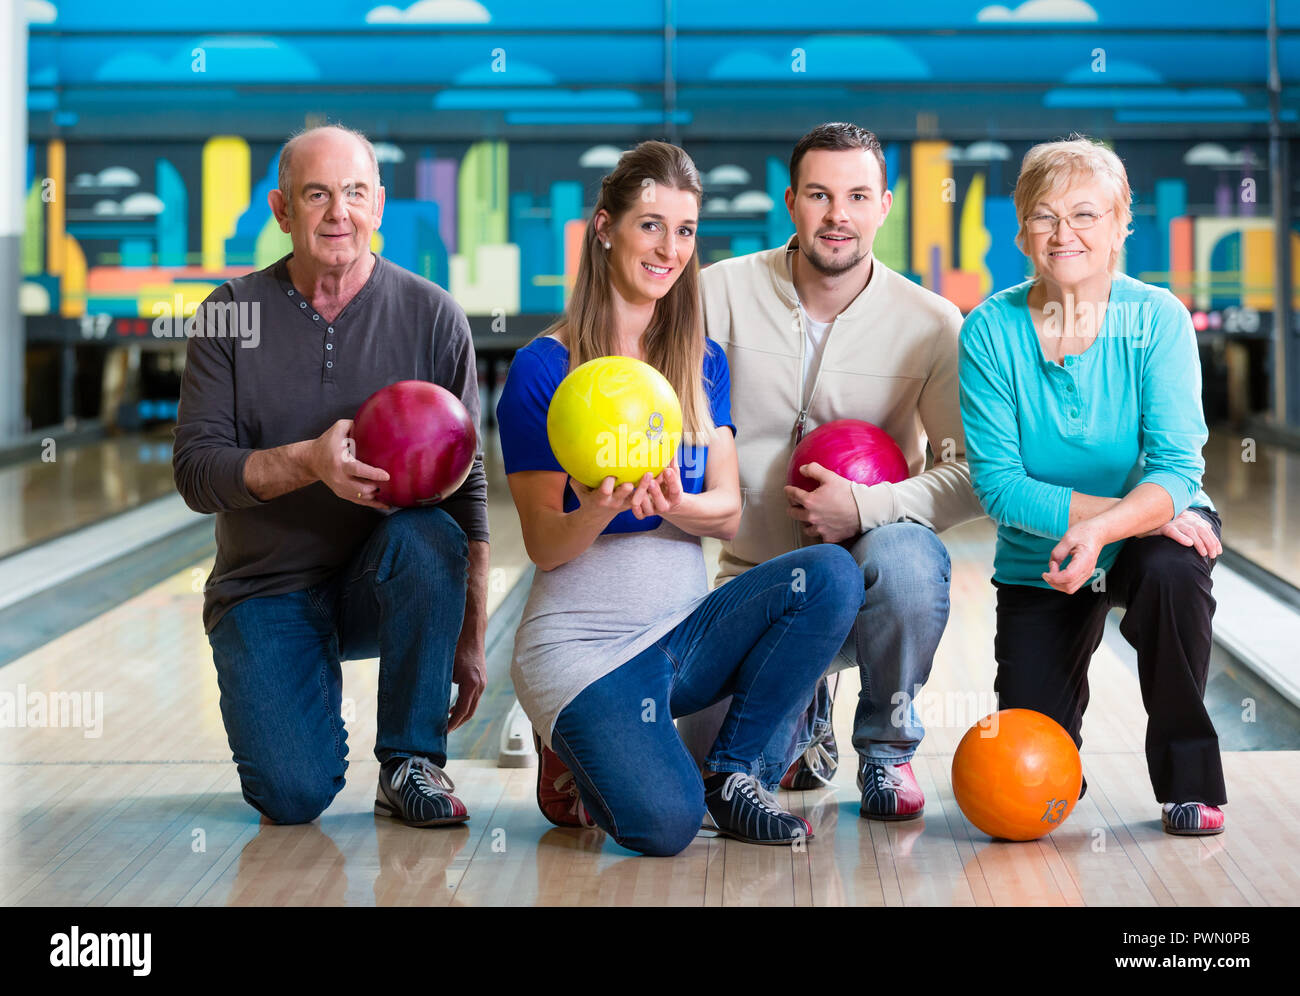 Family with multi colored bowling ball posing - Stock Image